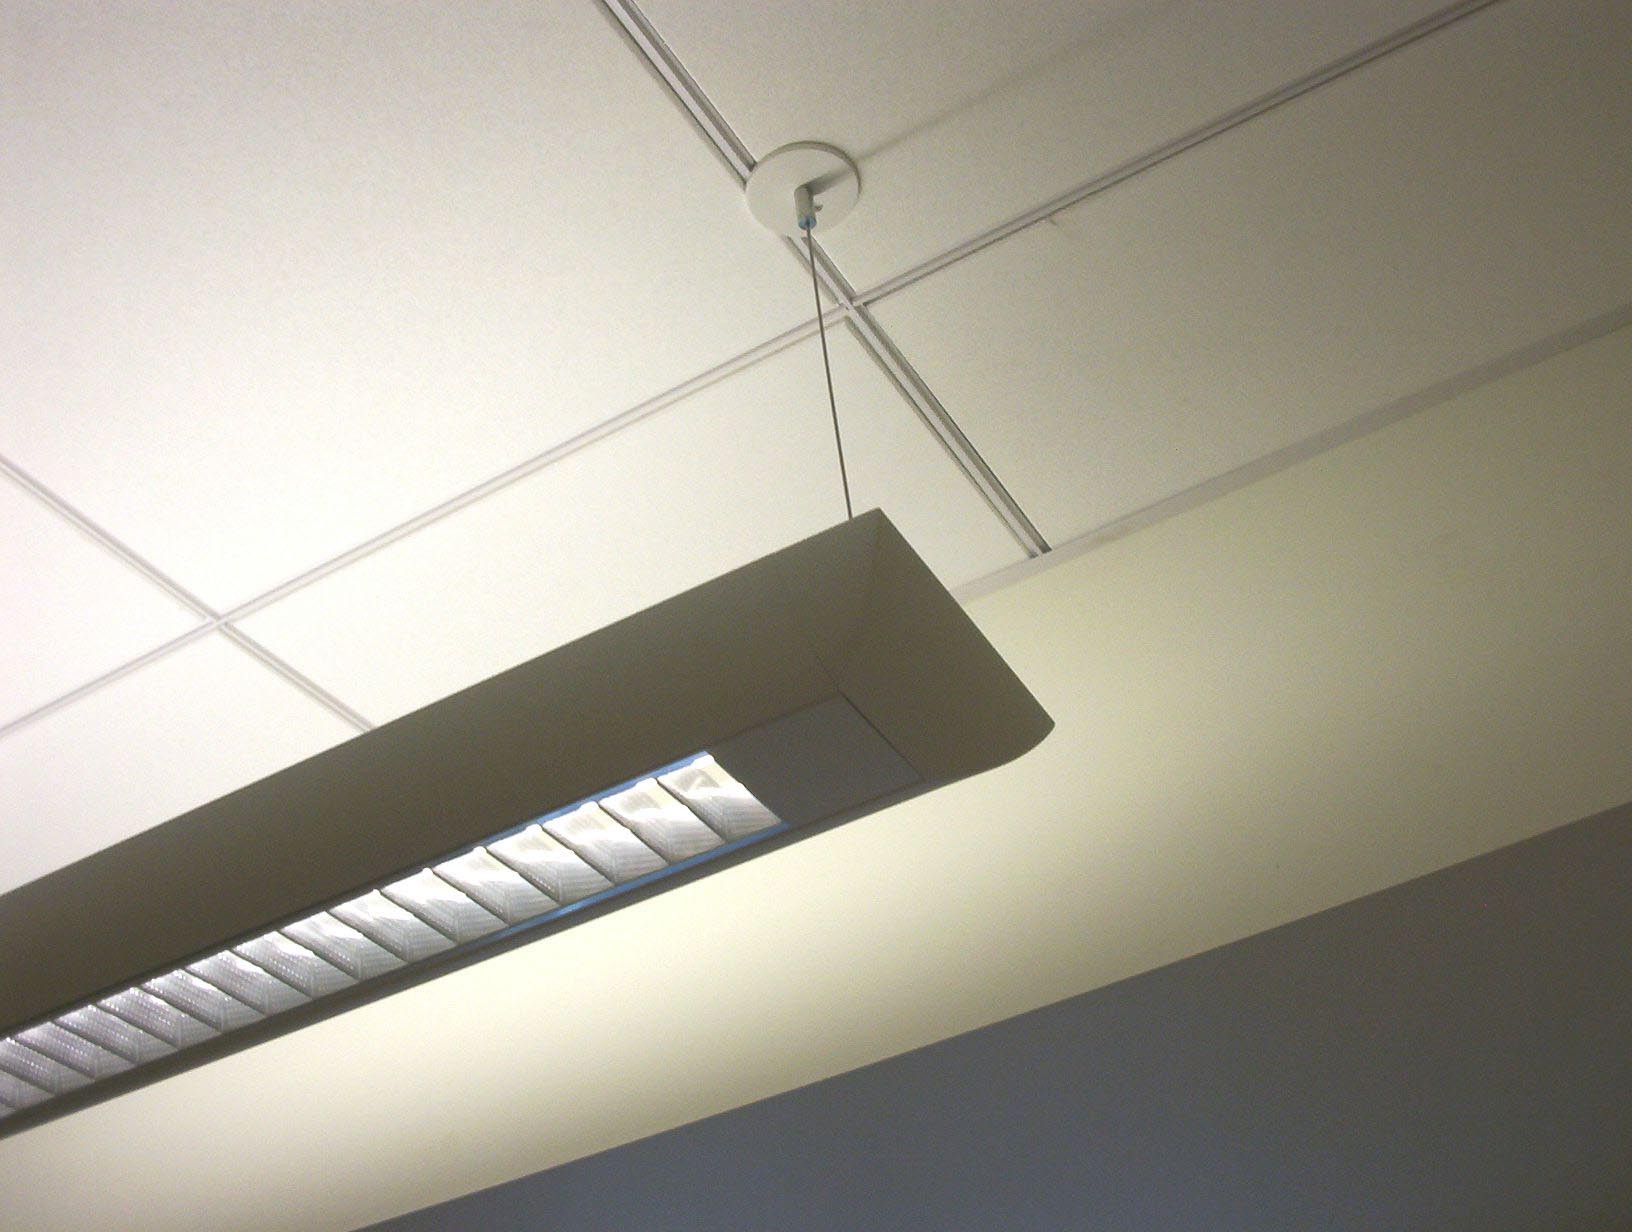 Commercial Office Lighting Fixtures